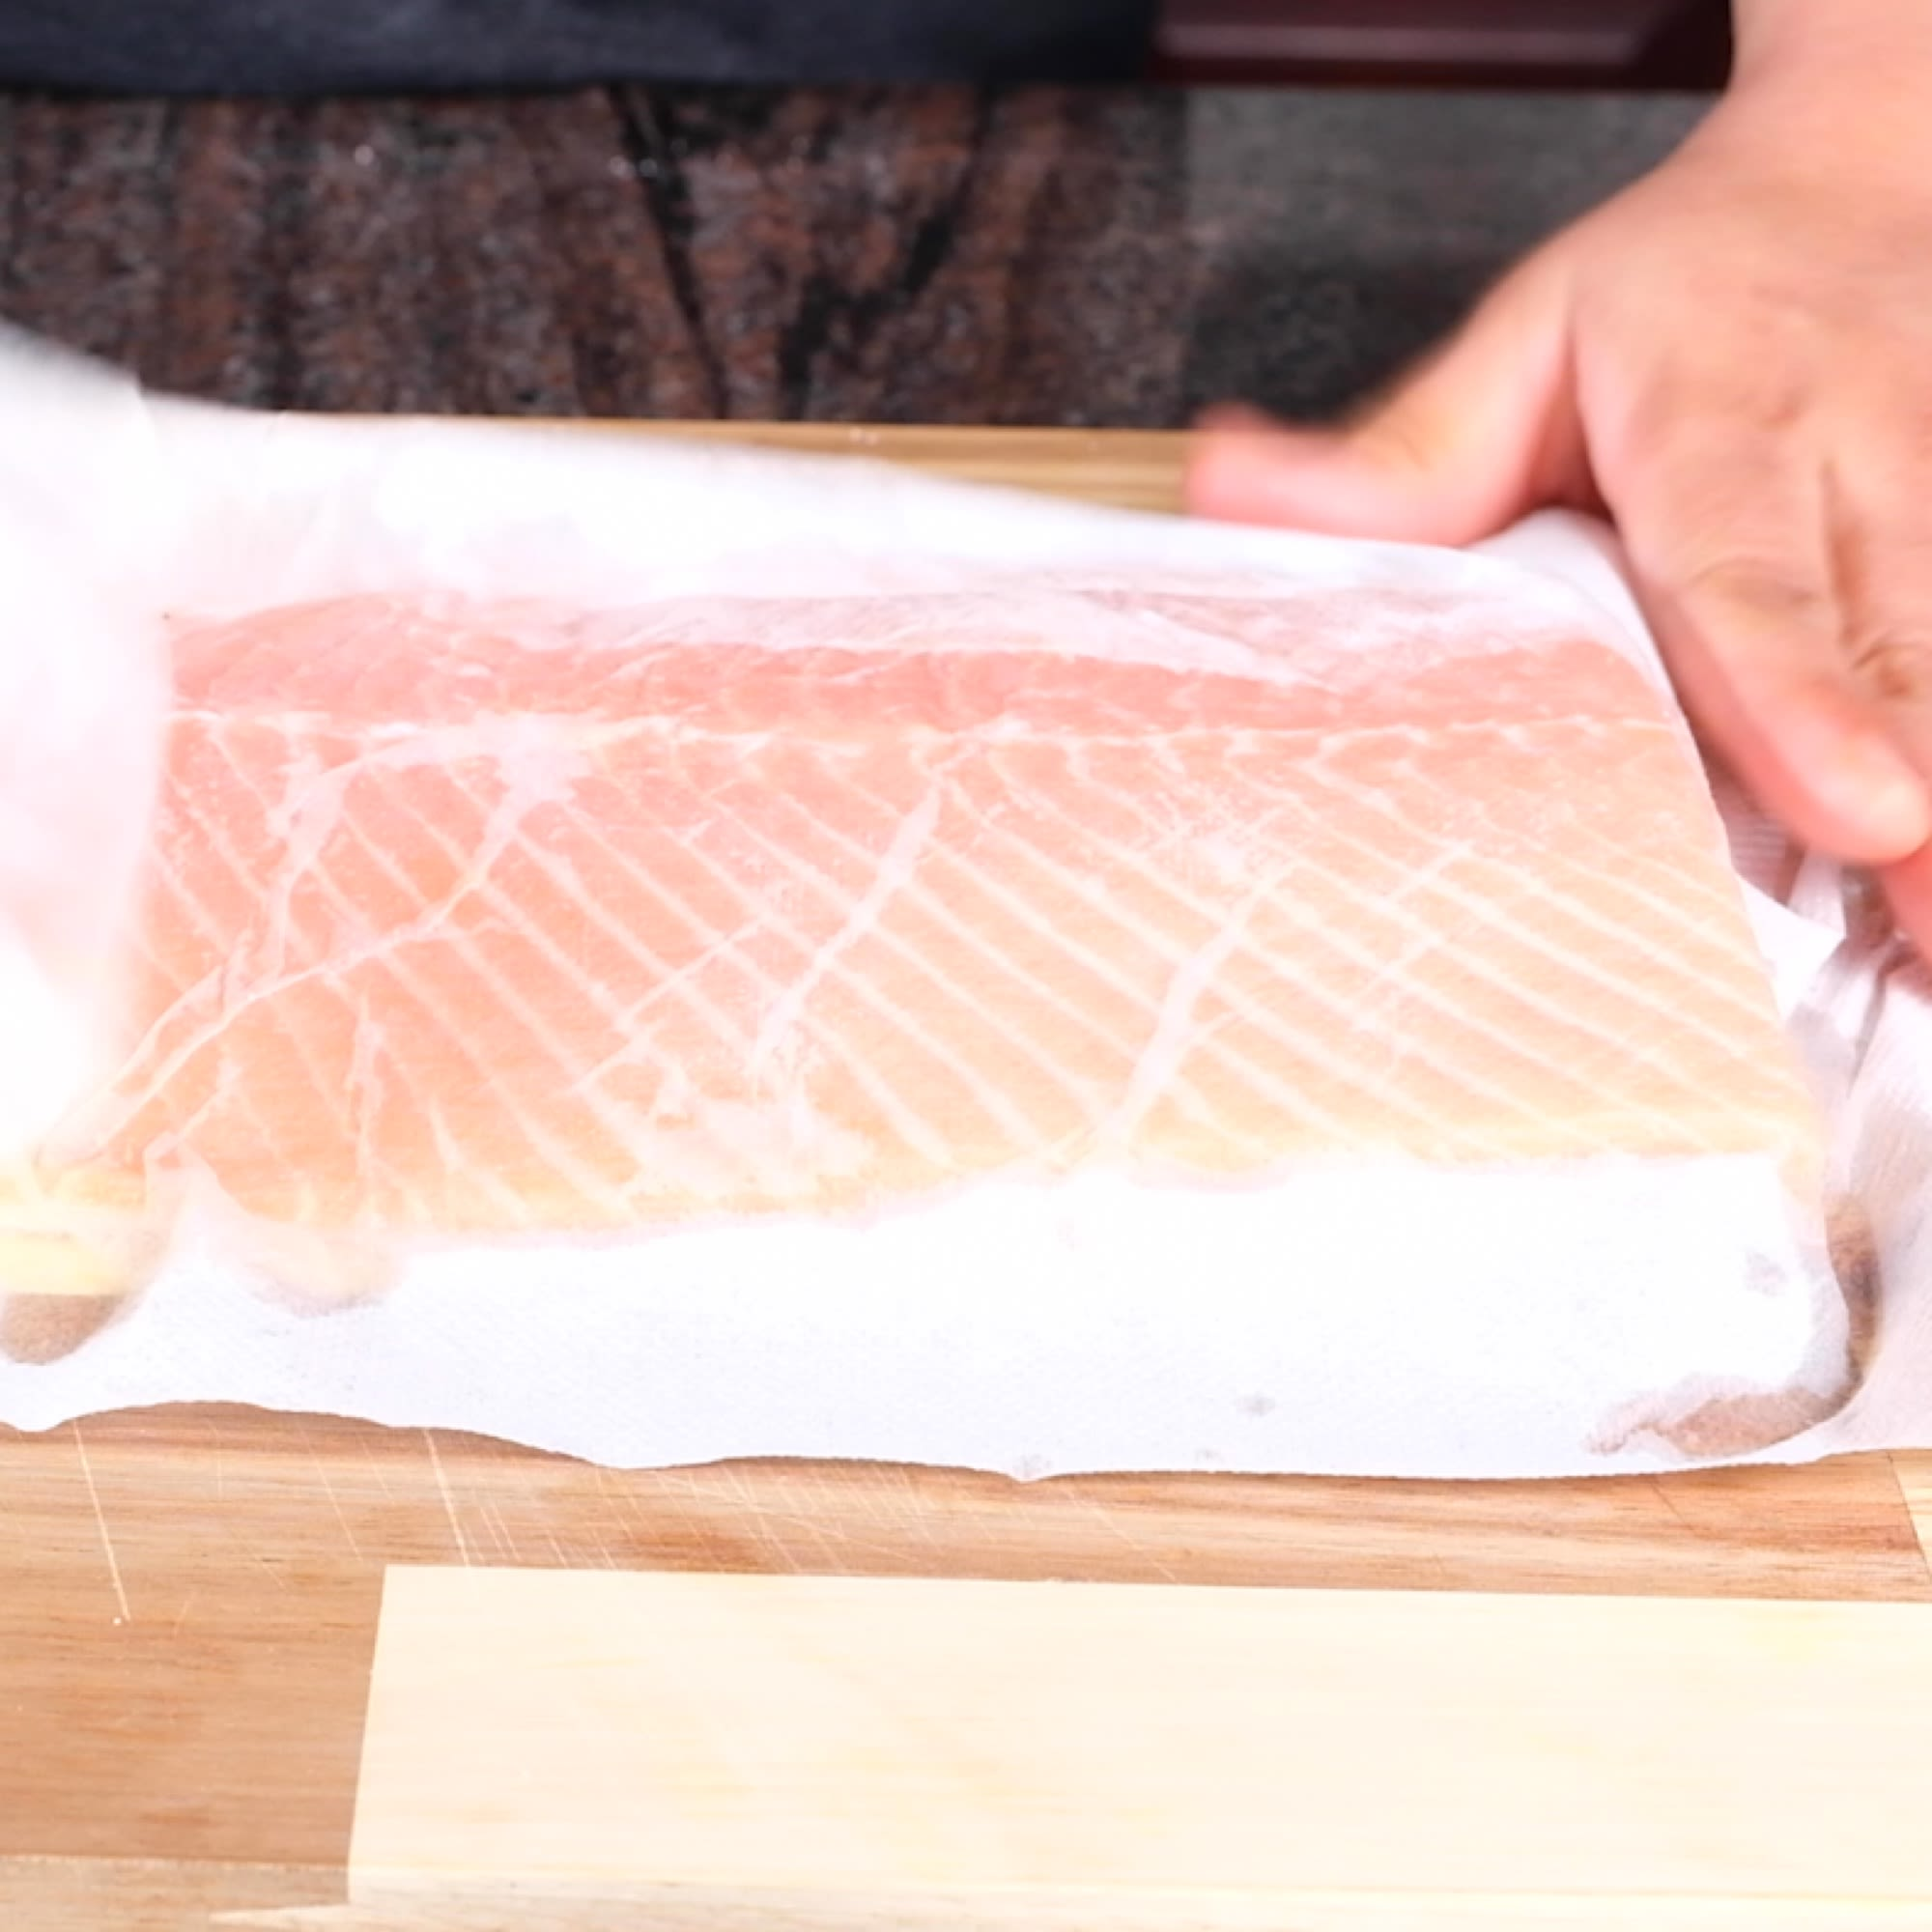 Take Salmon out of ice bath and pat dry.